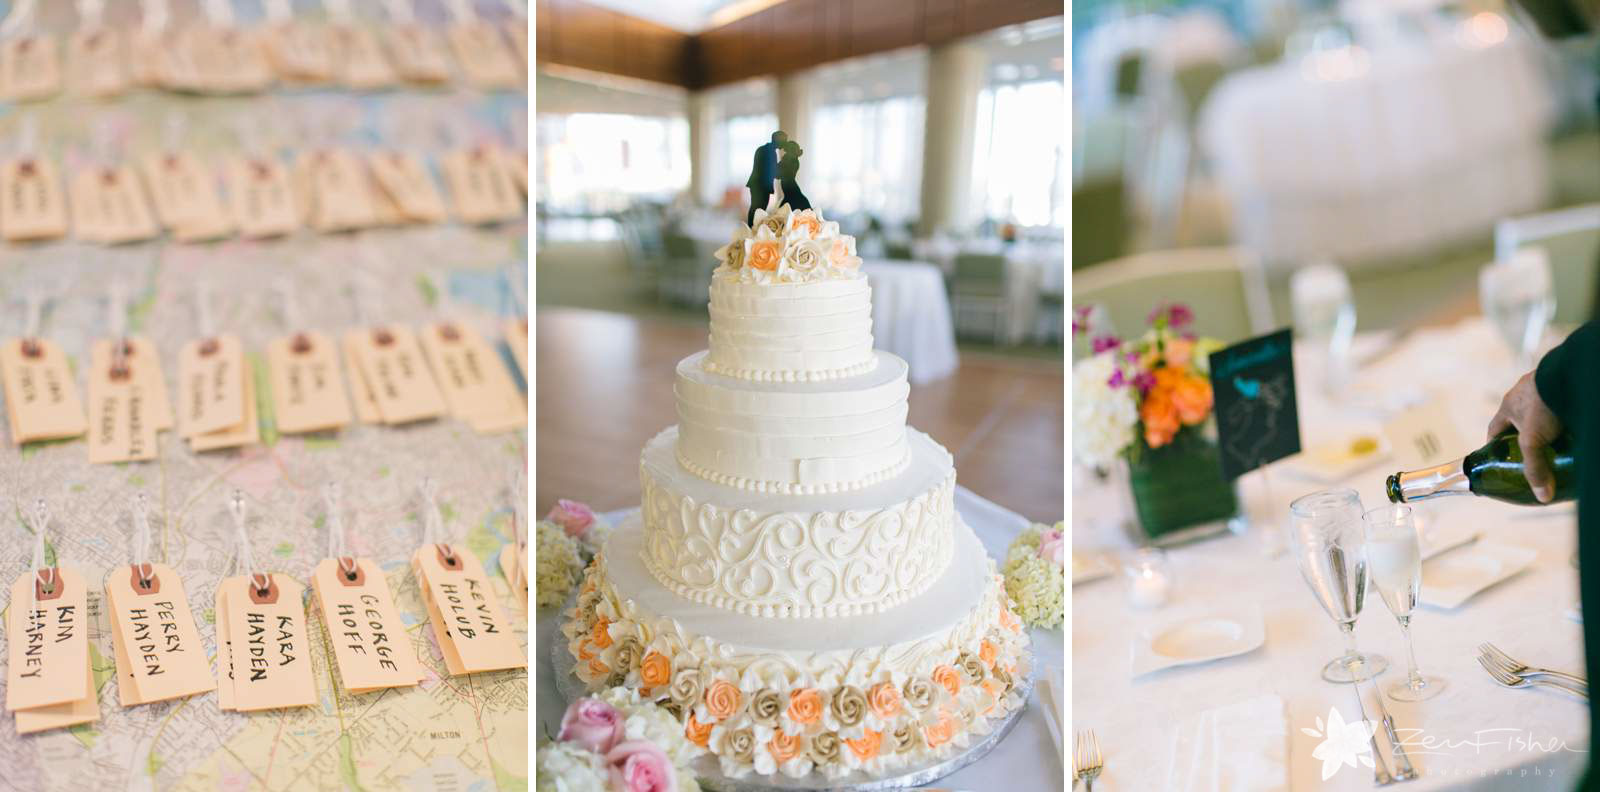 Detail of whimsical wedding cake, hand-written placecards, waiter pouring champagne for a toast